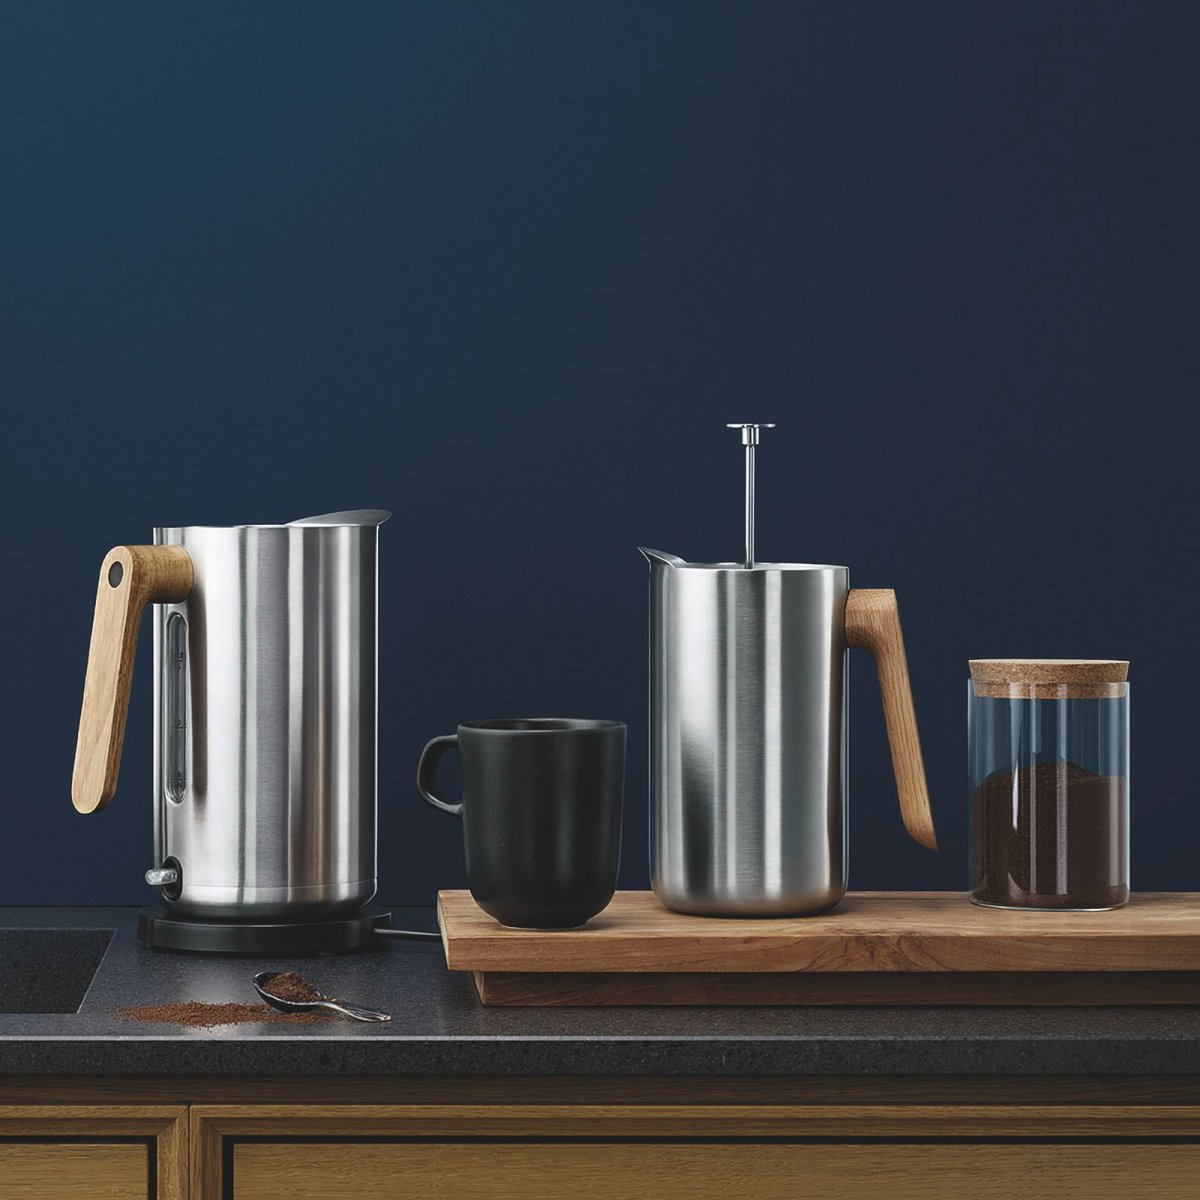 Nordic Kitchen Thermo Cafetiére and Electric Kettle.